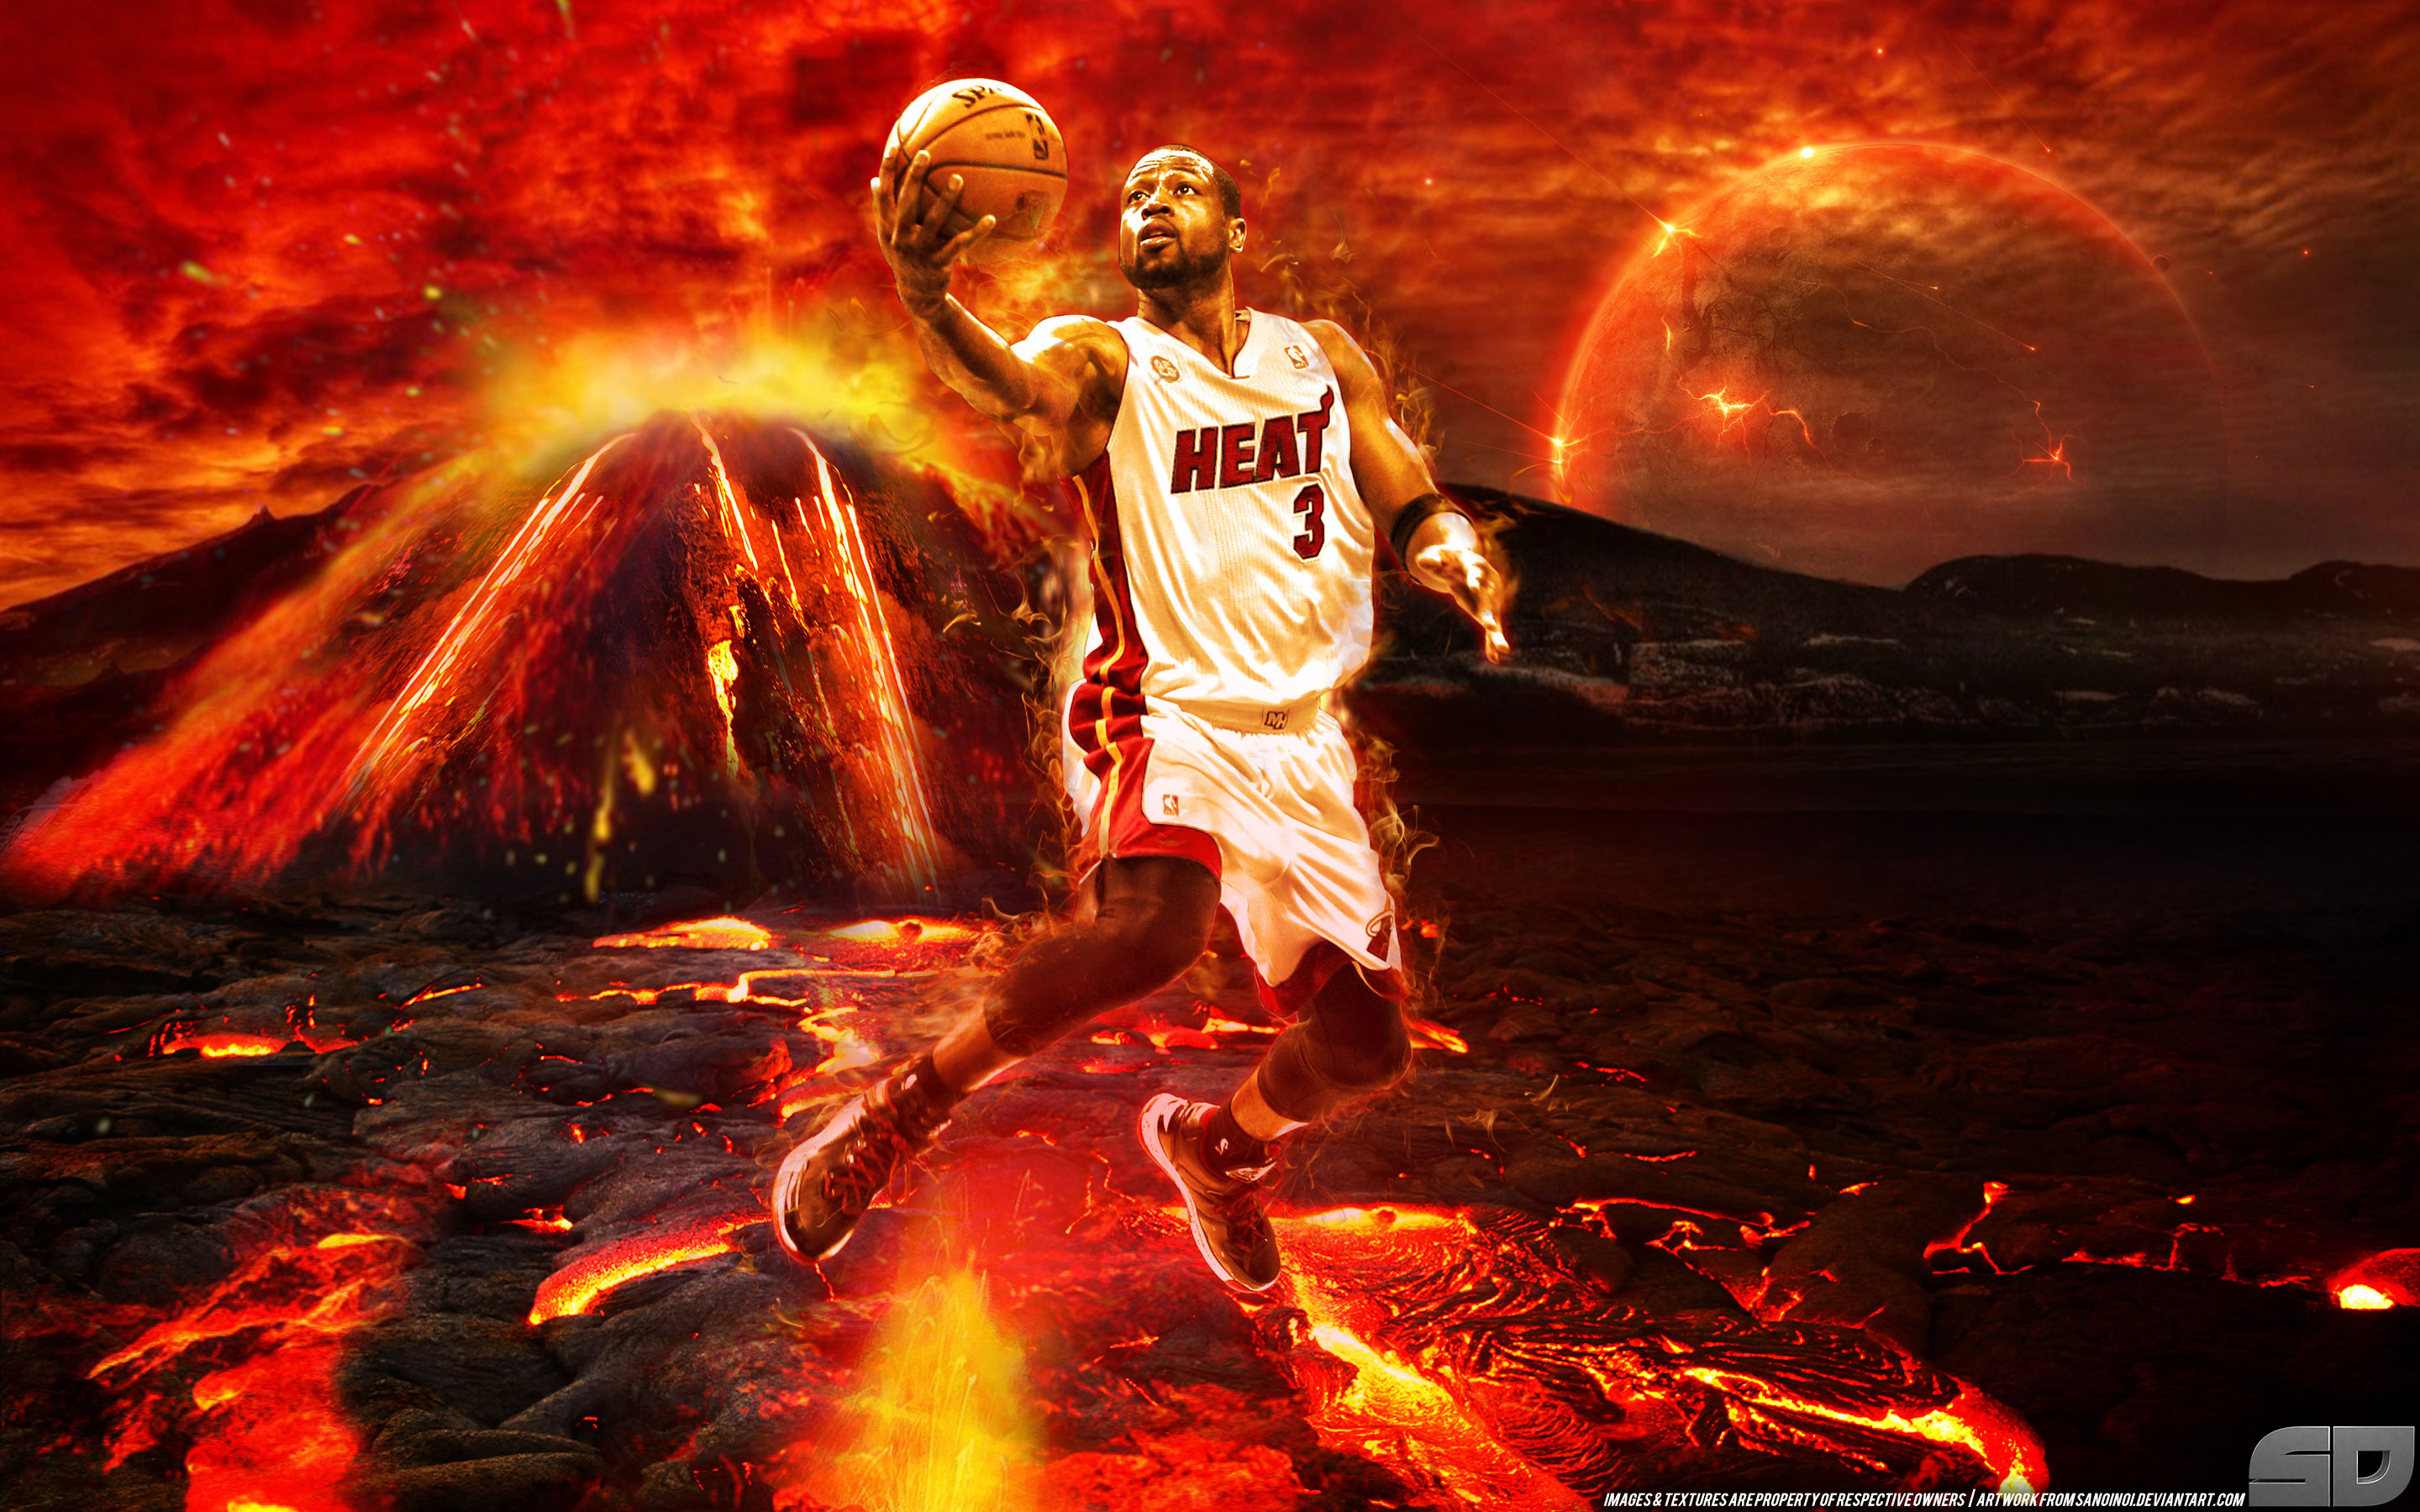 Dwyane Wade On Fire 2014 Wallpaper Basketball Wallpapers at 2880x1800